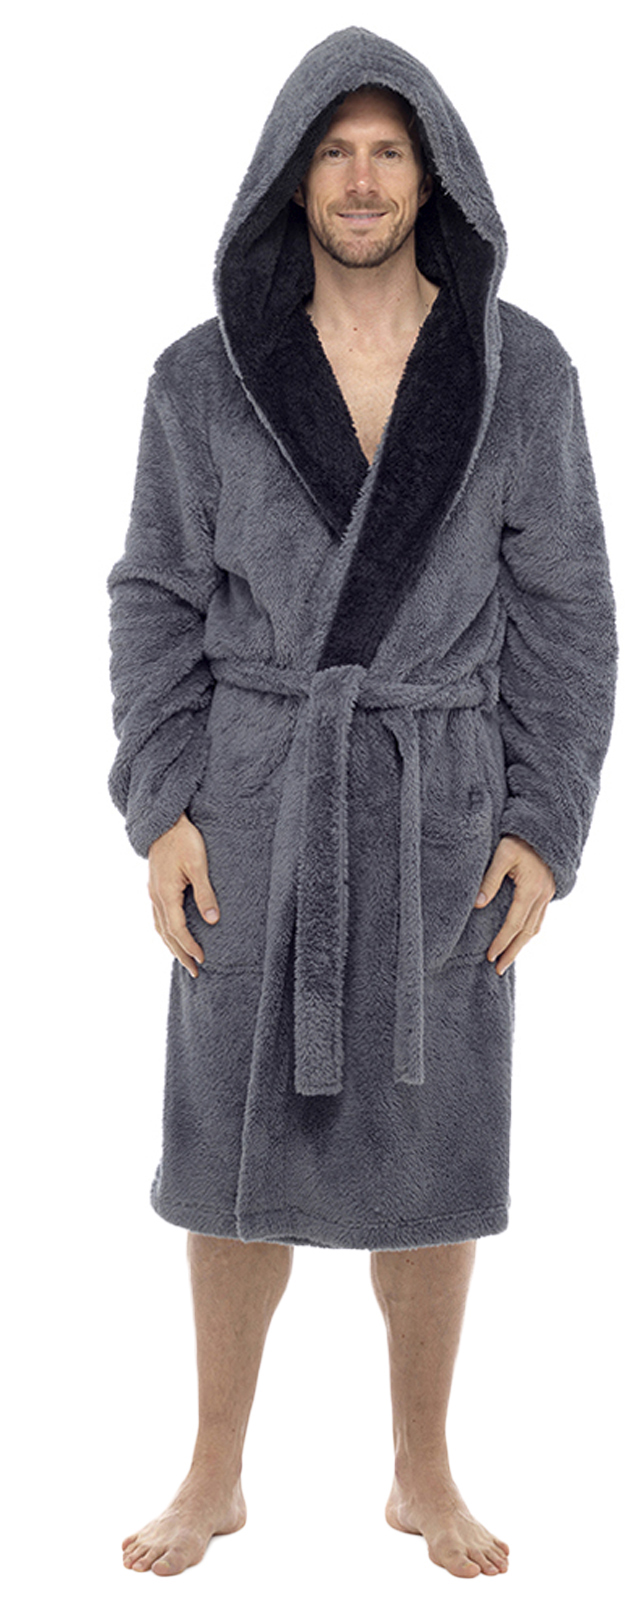 Hooded Mens Dressing Gowns - Home Decorating Ideas & Interior Design